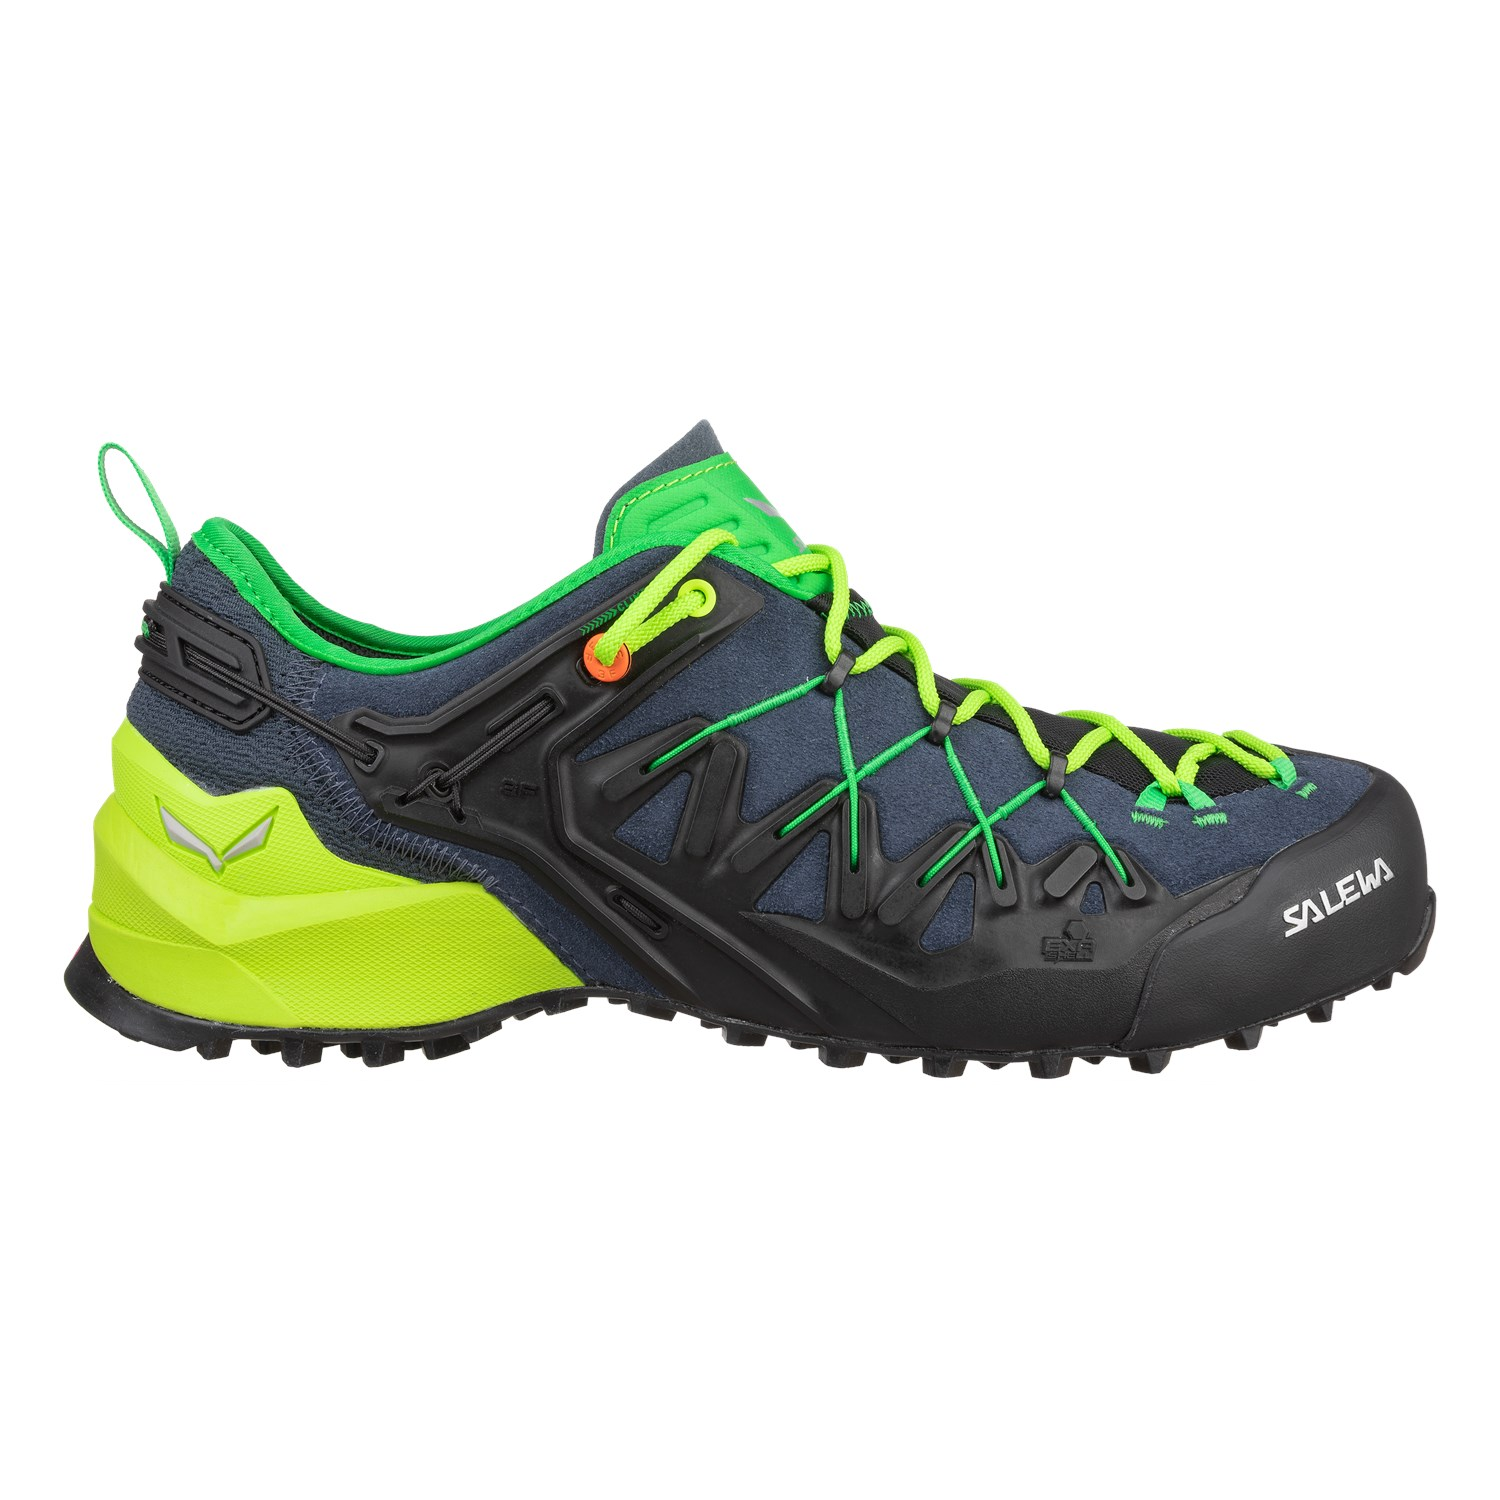 00 0000061346 3840 11 11 Mens Ombre BlueFluo Yellow Salewa